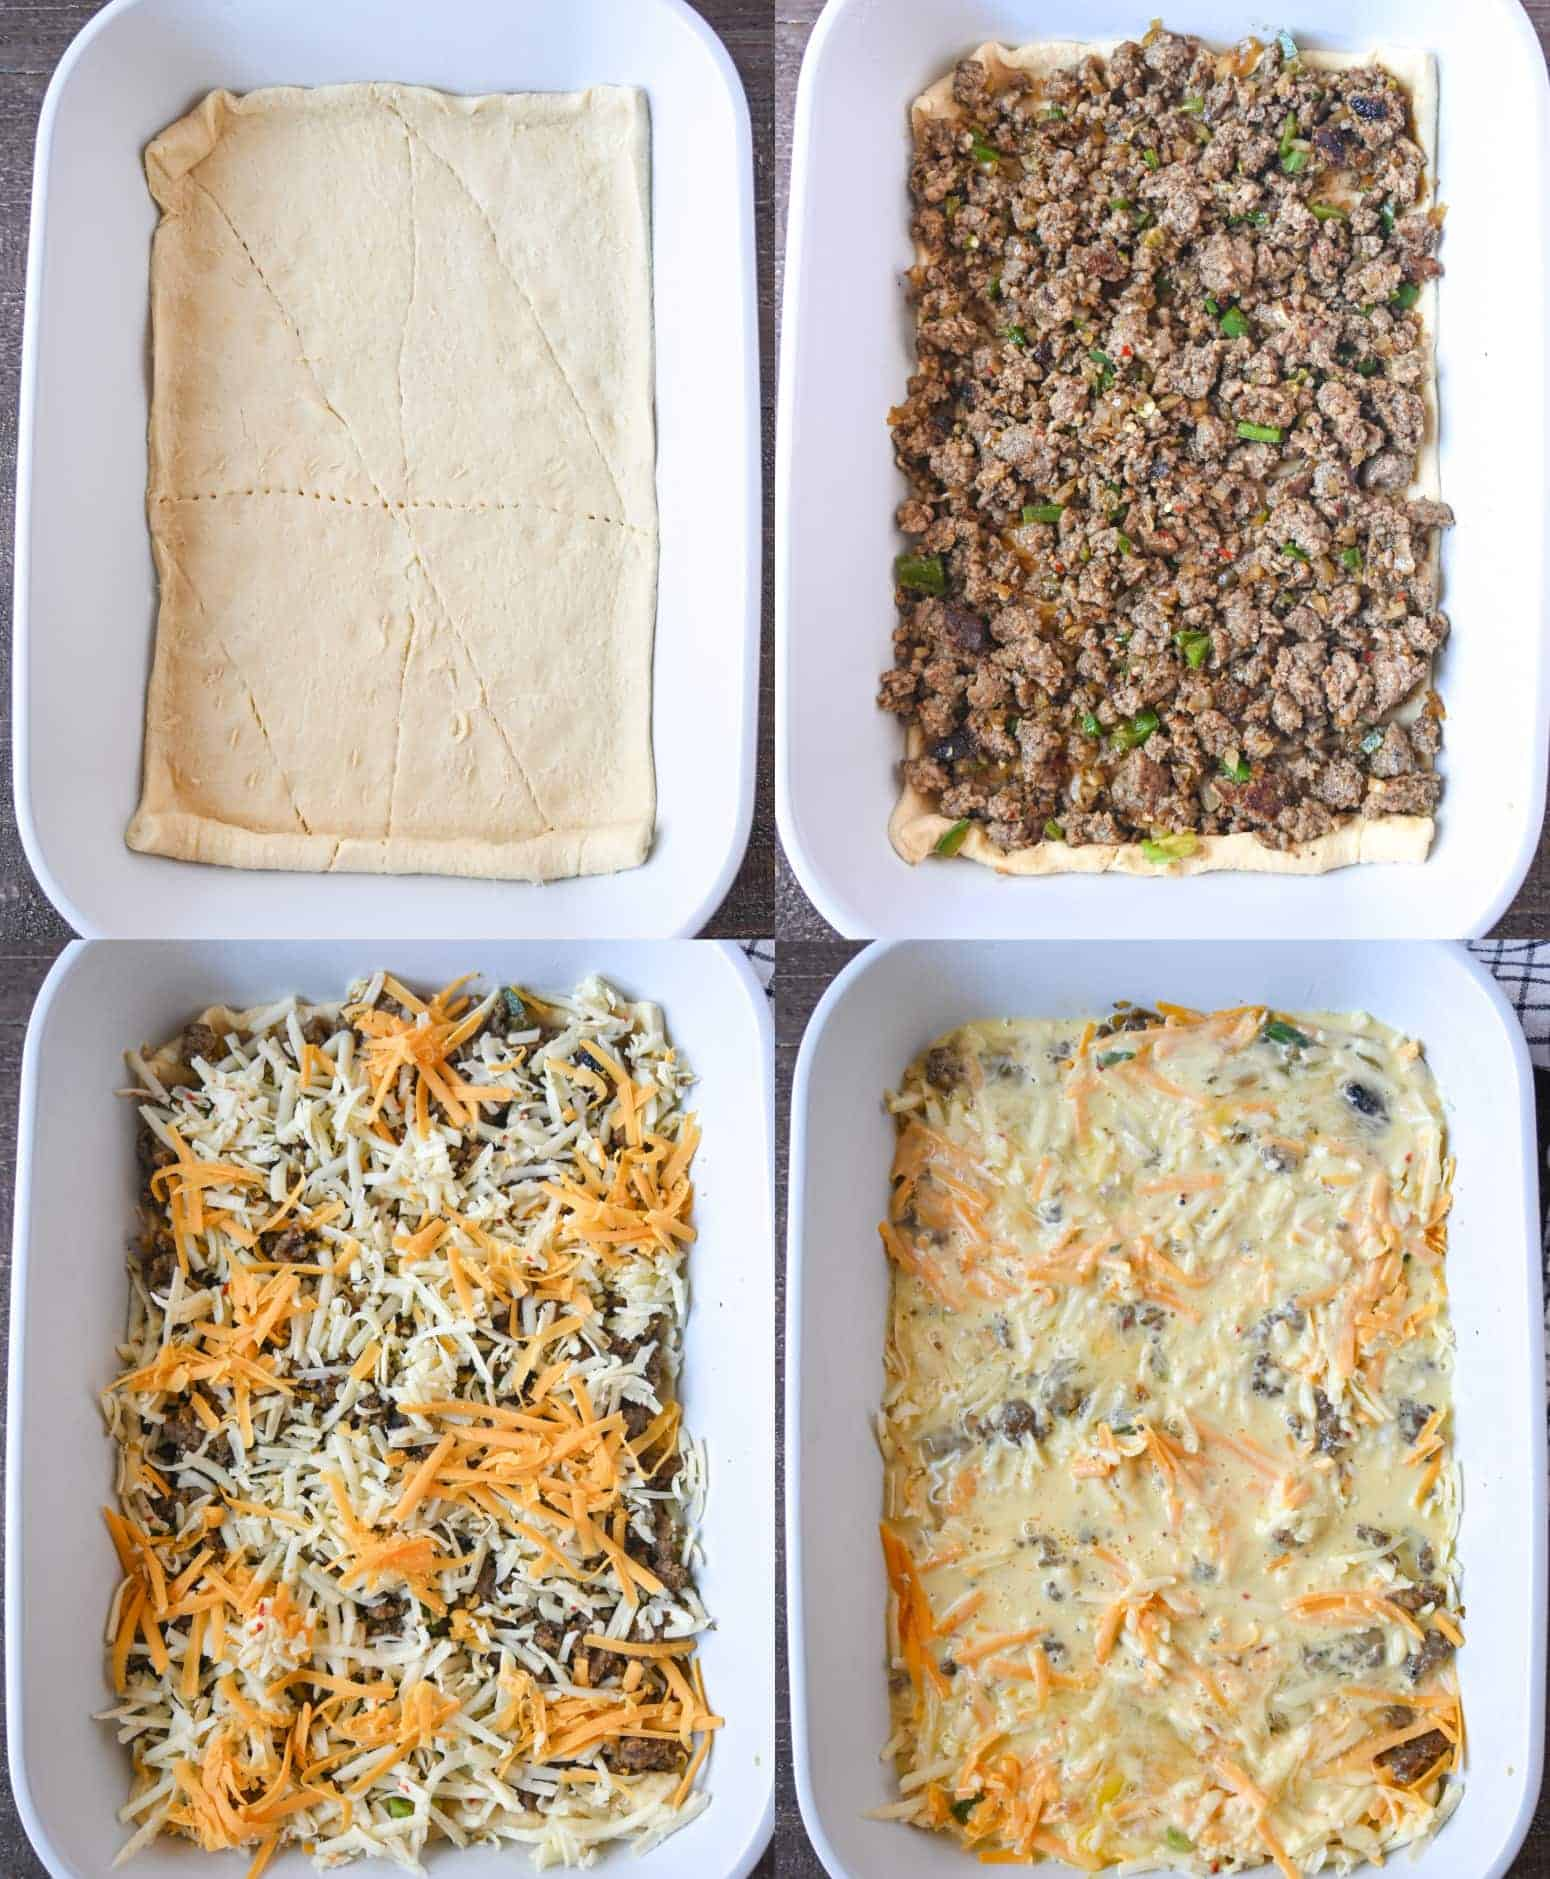 Four process photos. First one, crescent dough rolled out into the bottom of a baking dish. Second one, cooked sausage, onions and jalapenos placed on top of the crescent dough. Third one, shredded cheese sprinkled on top. Fourth one, egg mixture poured on top.